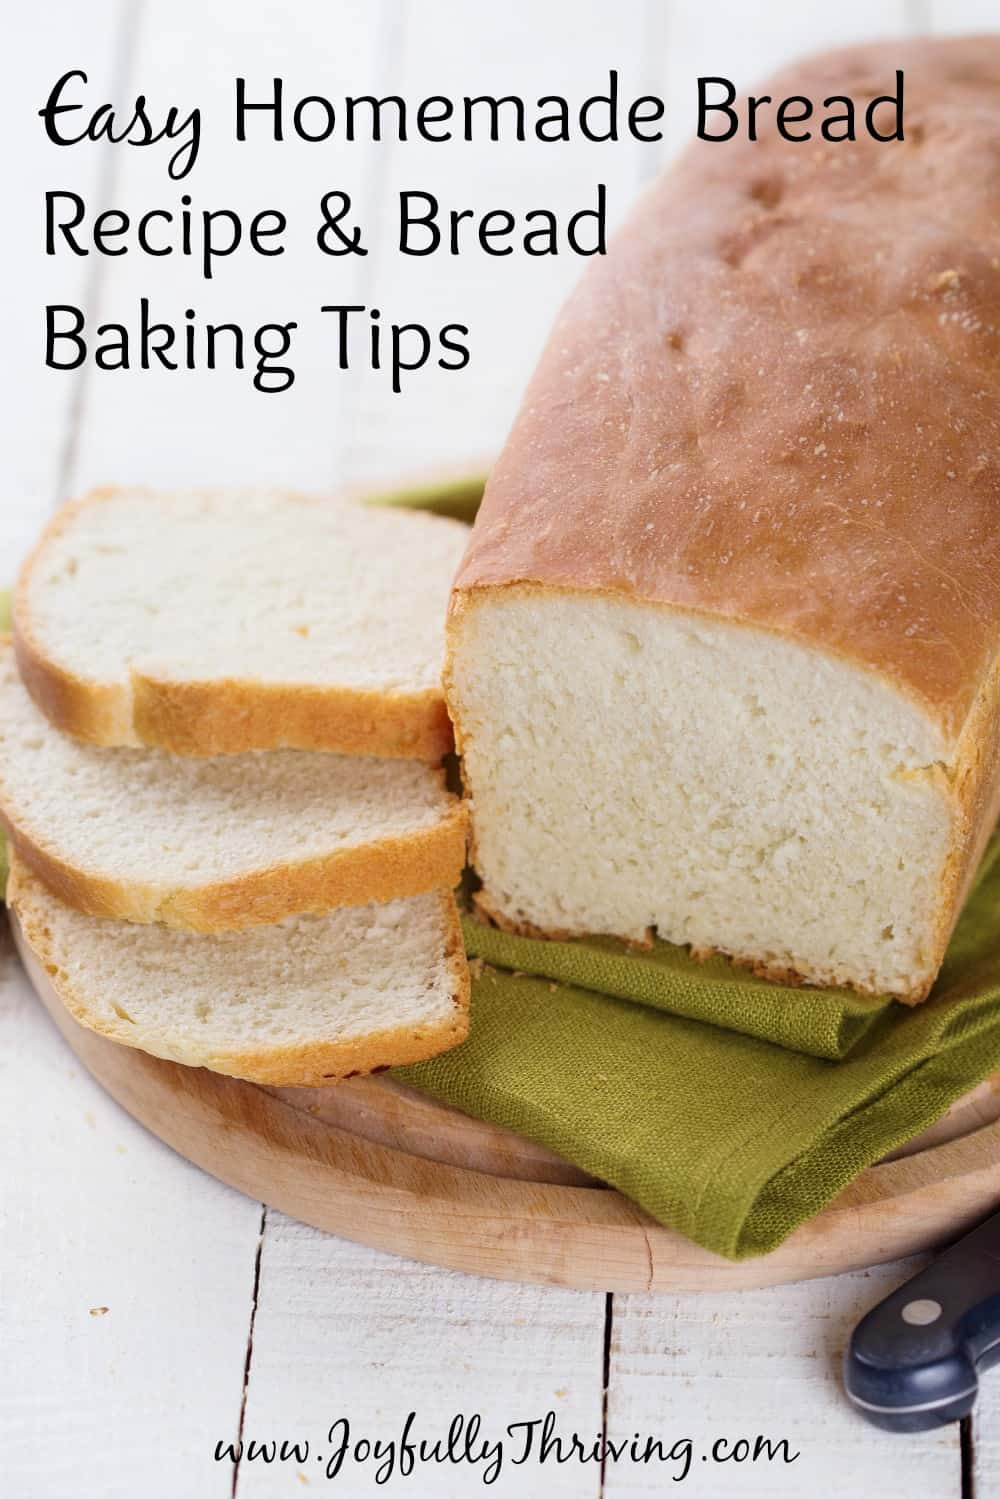 red kitchen aid mixer appliances packages homemade bread recipe & tips